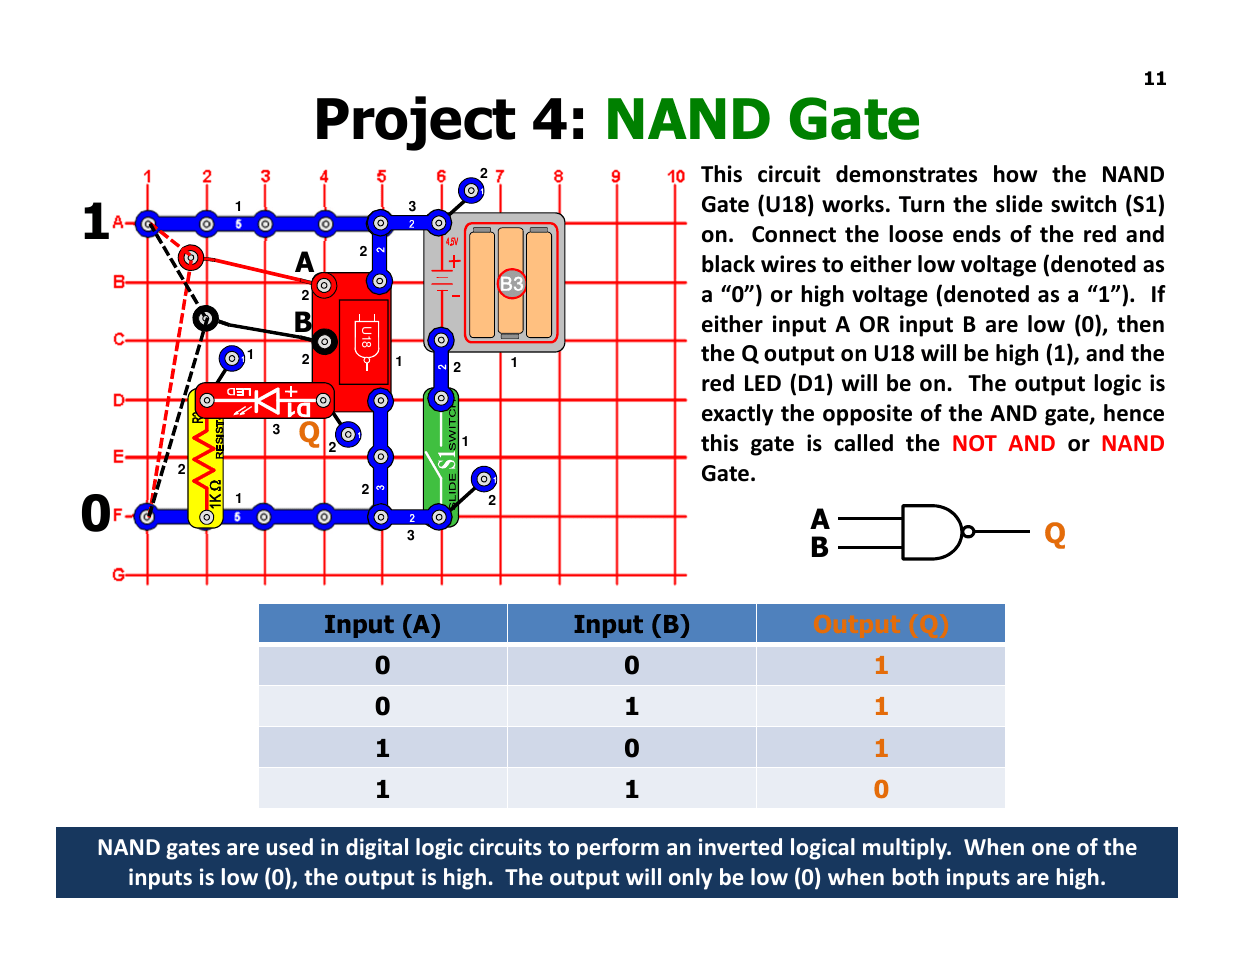 hight resolution of project 4 nand gate aq b ab q elenco understanding logic gates and circuits user manual page 11 42